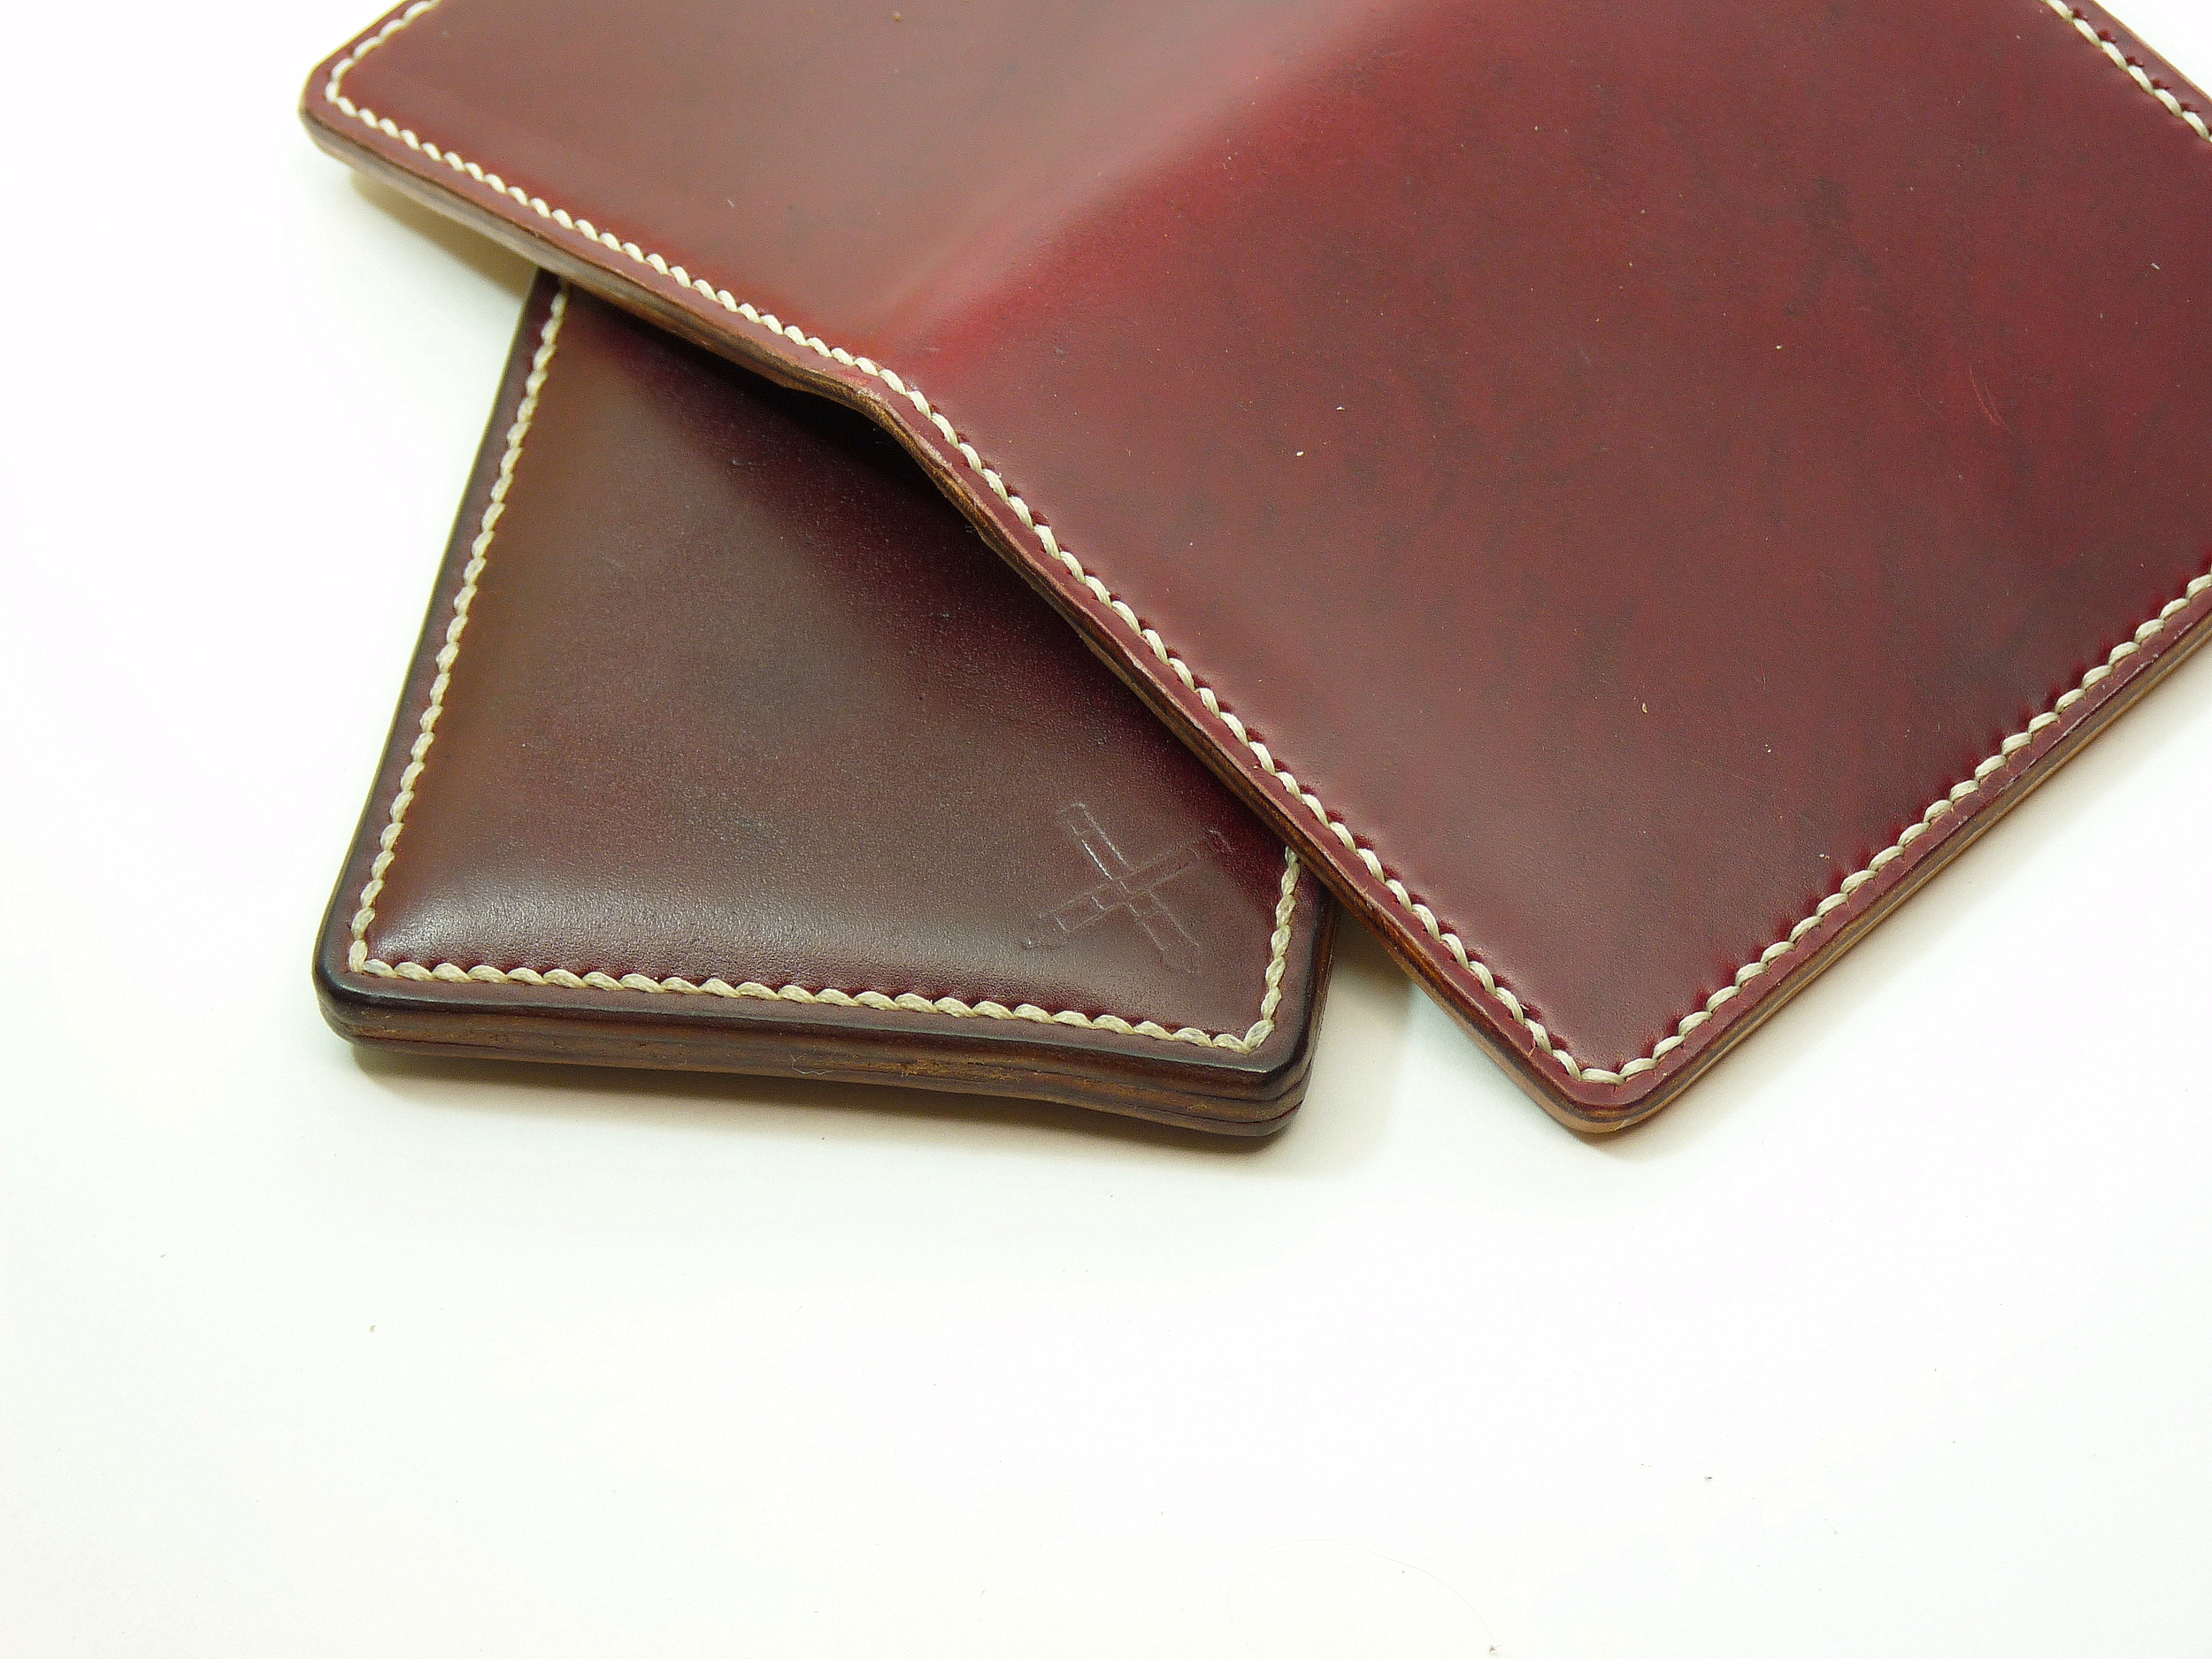 Made-to-Order Card Cases & Wallets